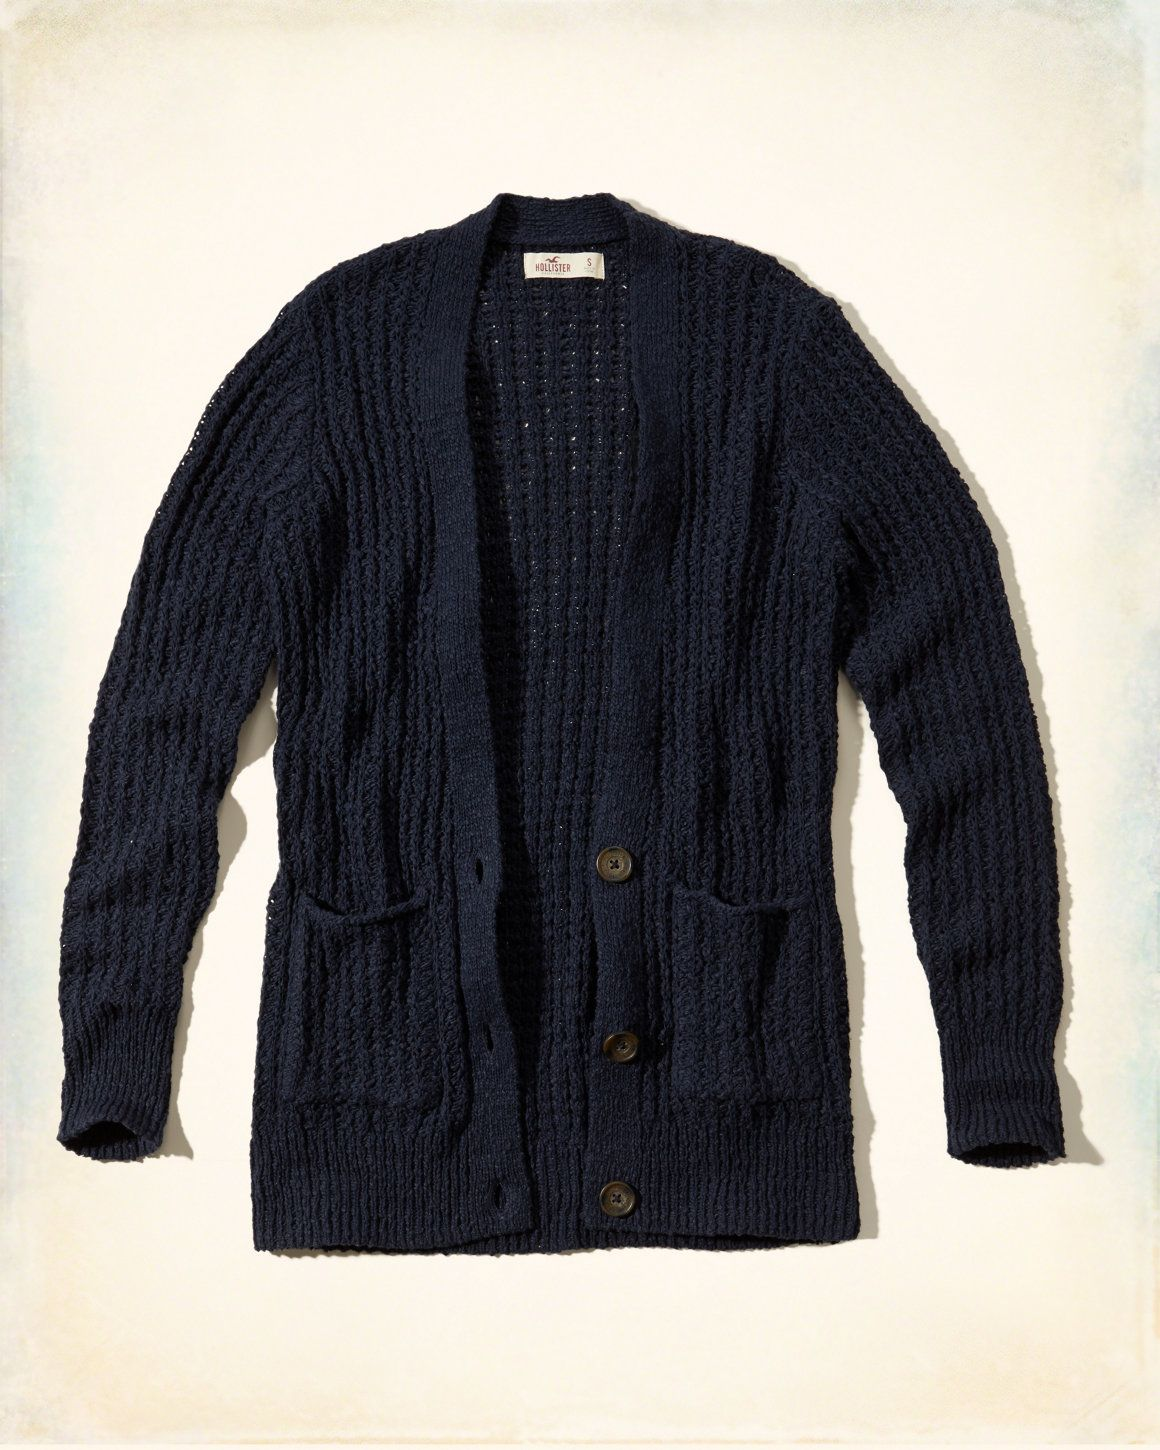 Have this Hollister boyfriend cardigan in navy | For My SF Stylist ...